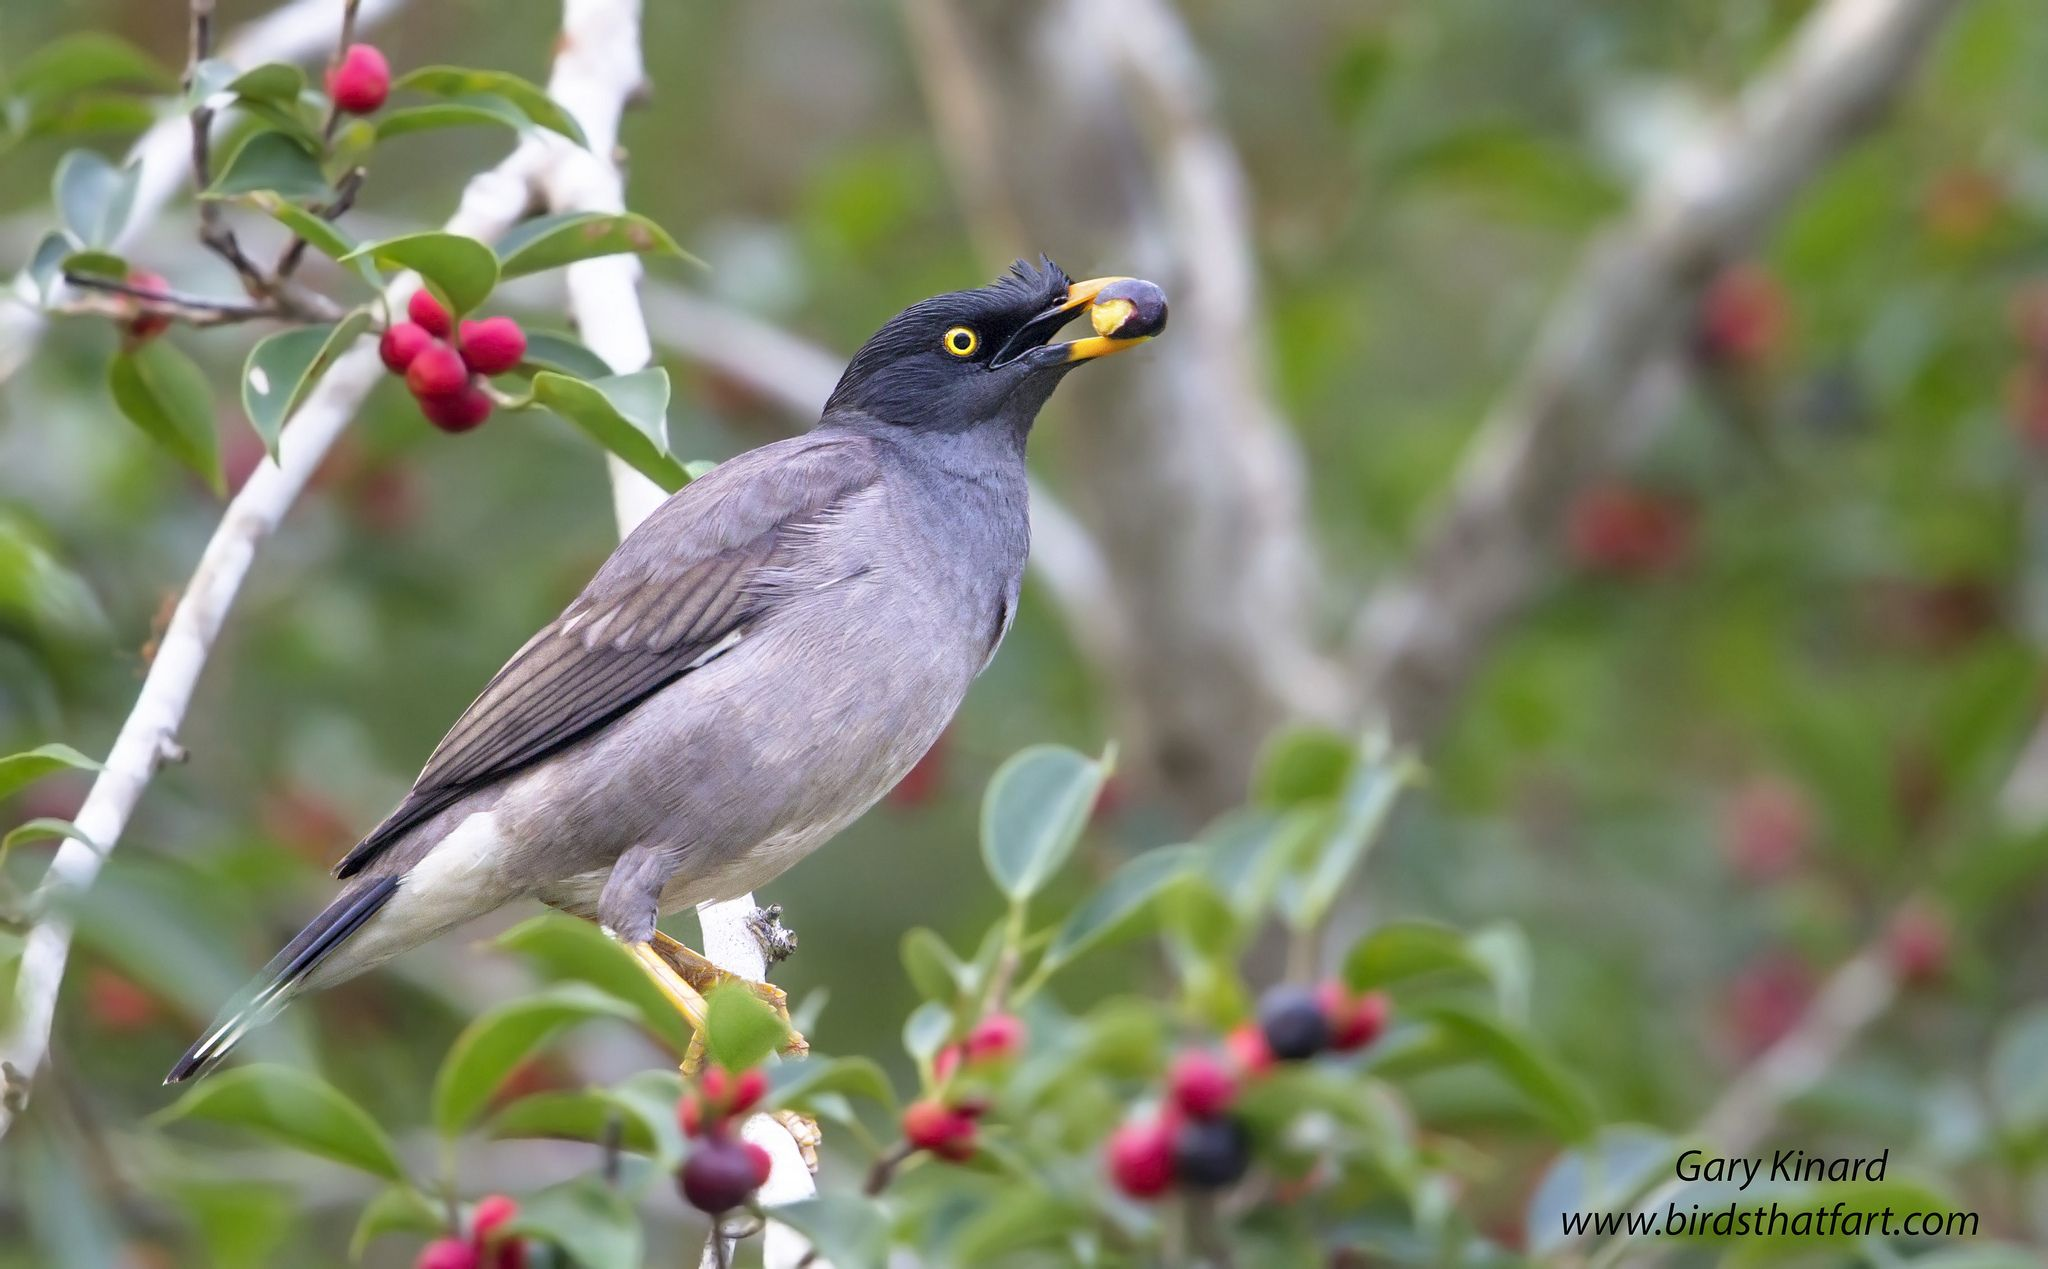 Jungle Myna (Acridotheres fuscus) | Bird